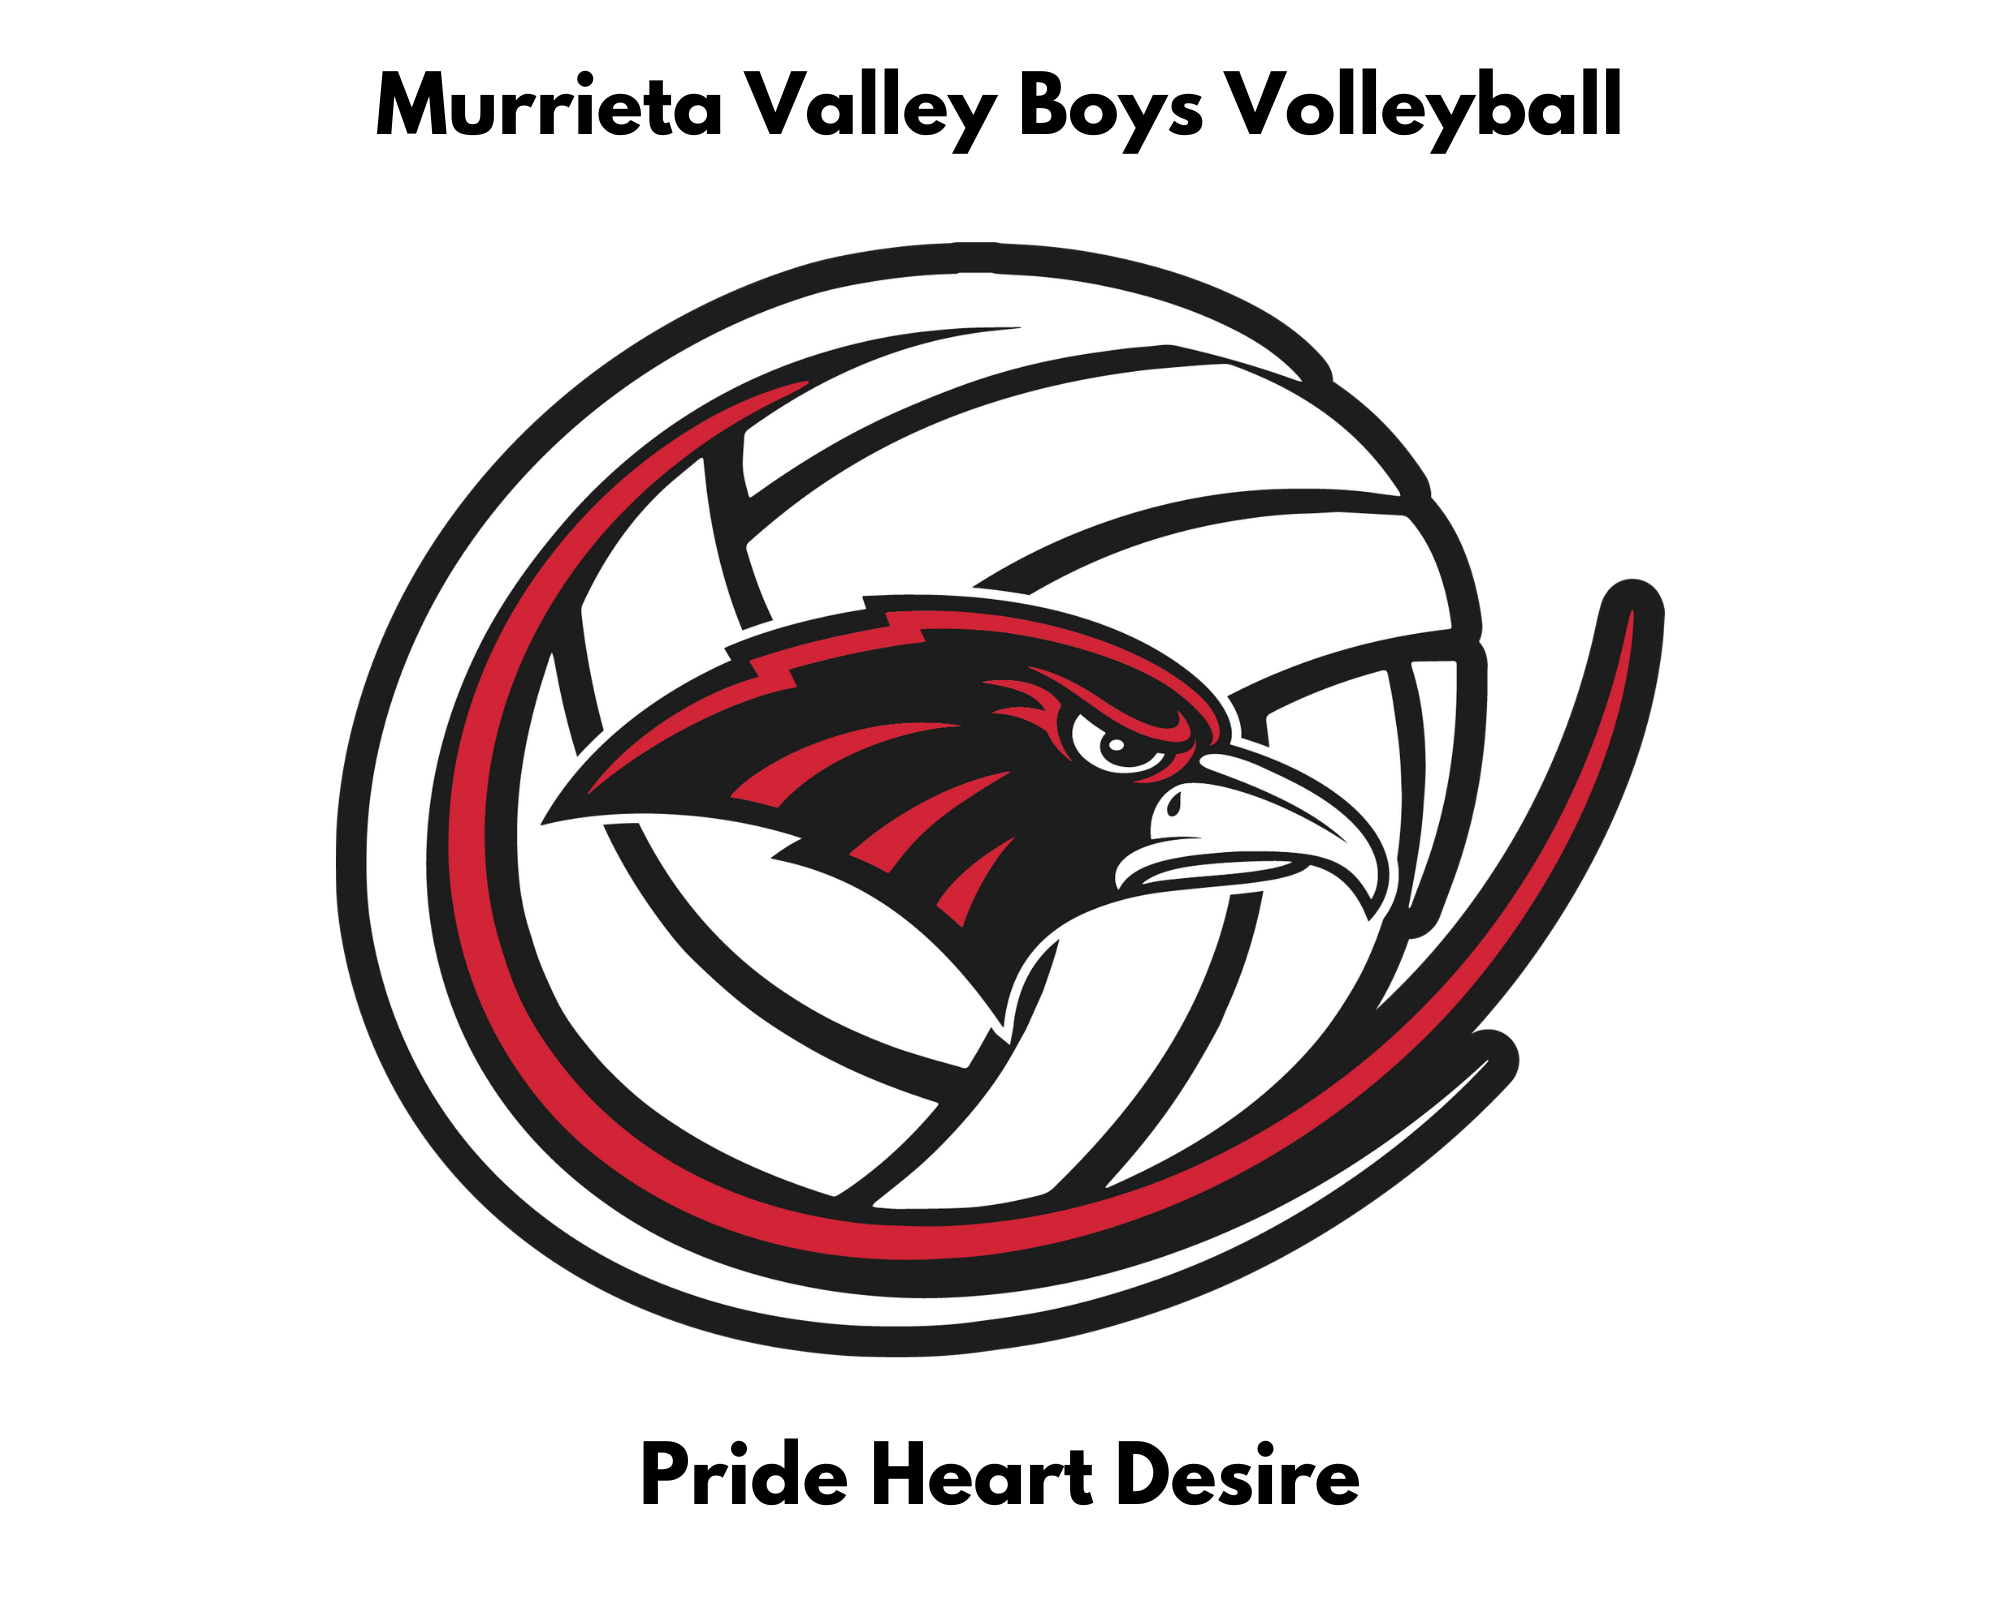 Murrieta Valley Boys Volleyball